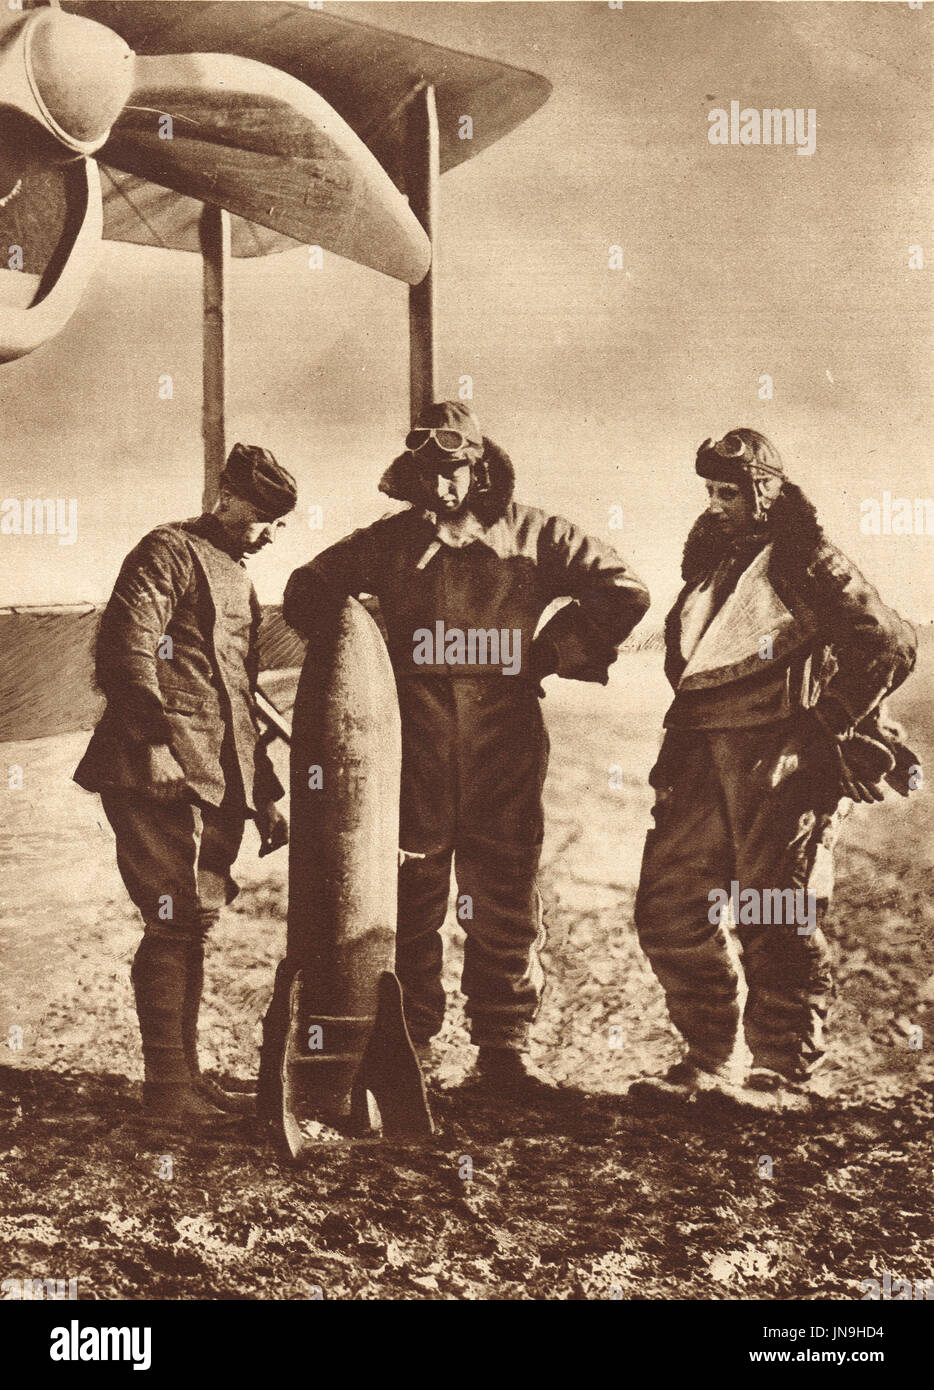 British Airmen contemplating destructive power of the Bomb they have to deliver, ww1 - Stock Image